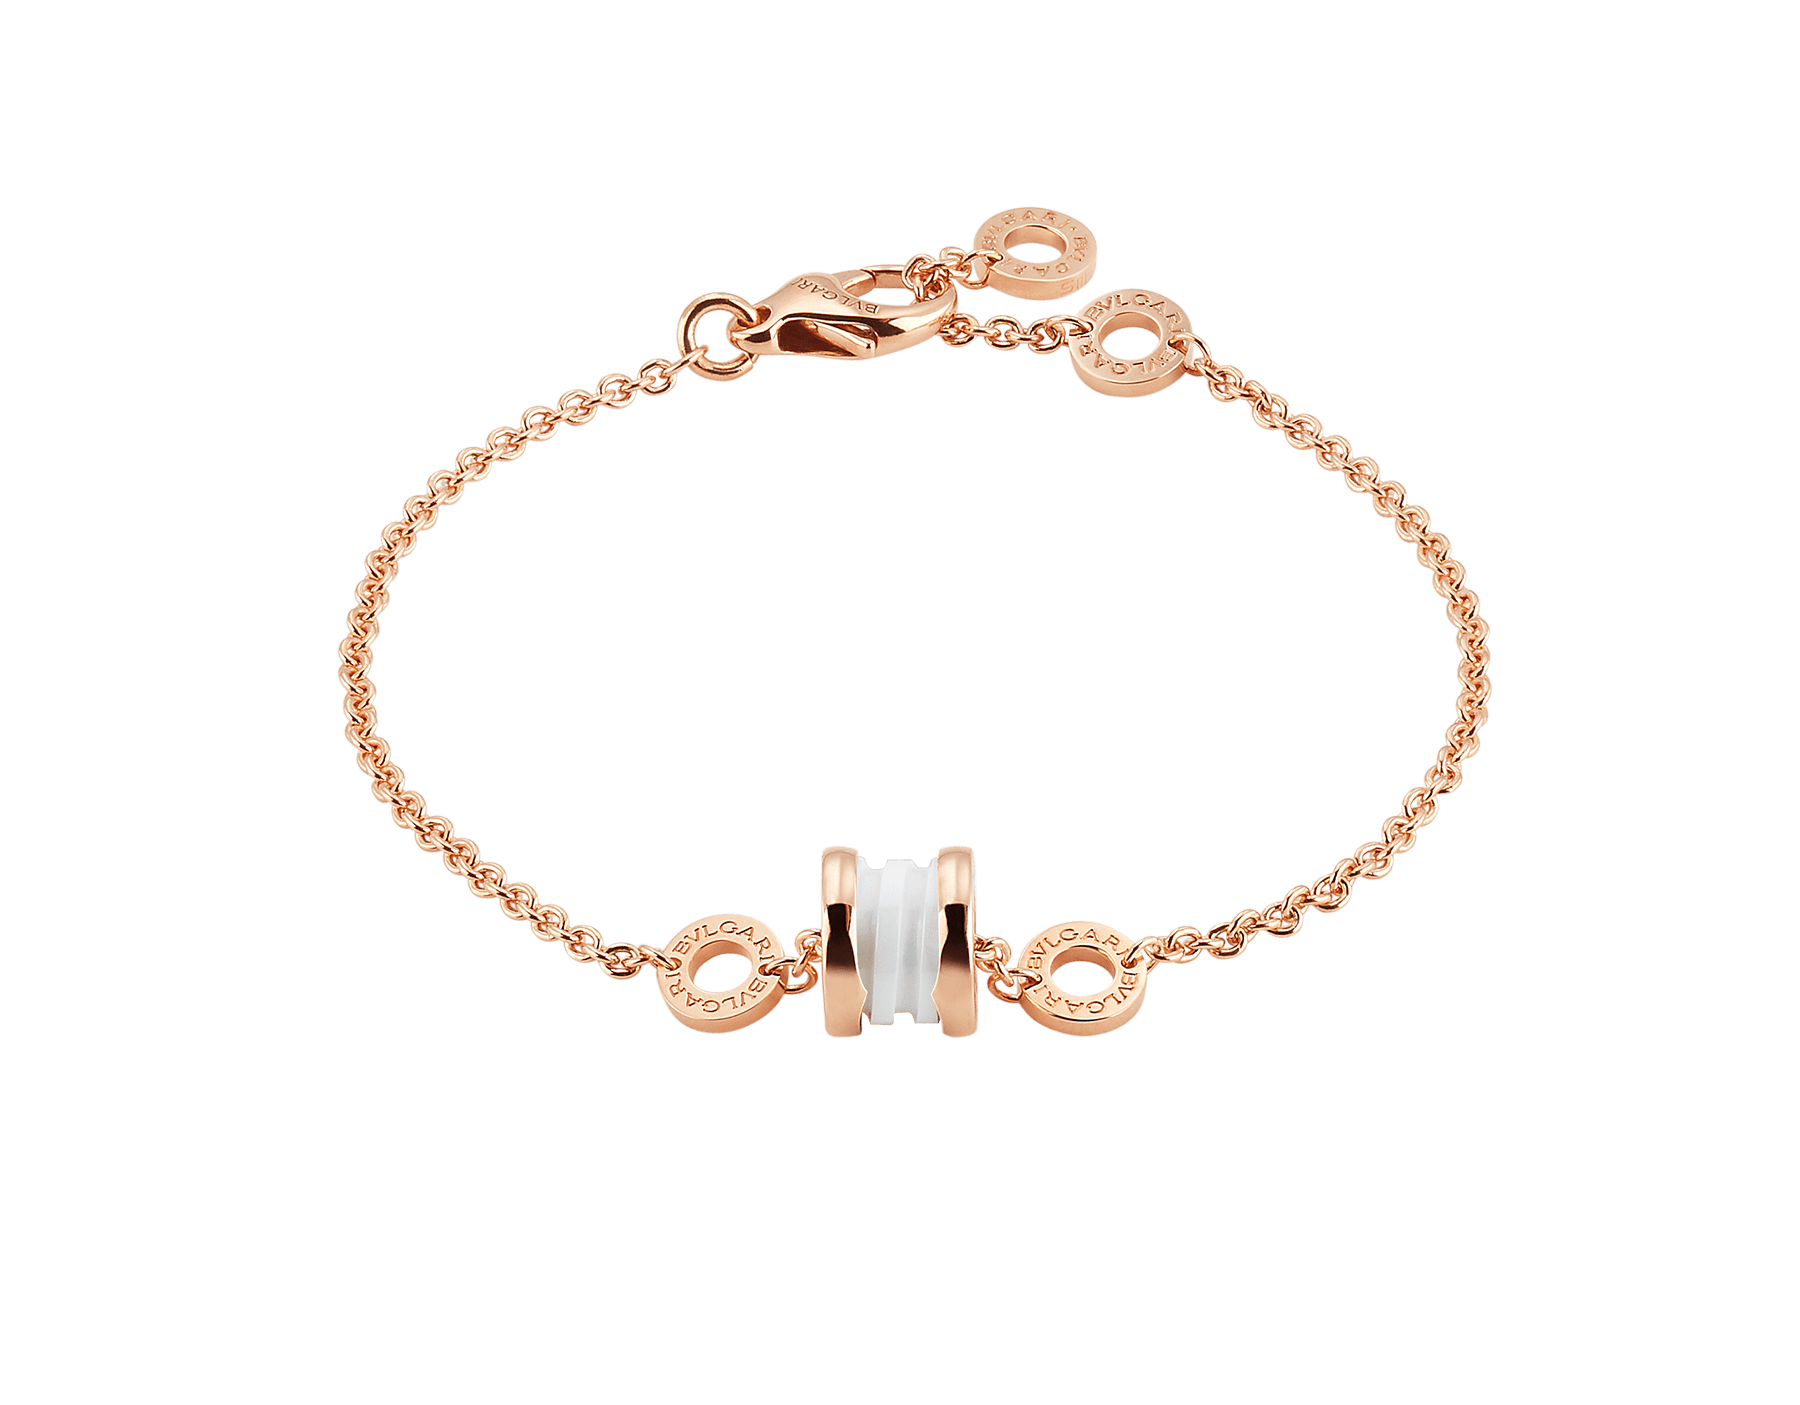 B.zero1 soft bracelet in 18 kt rose gold with 18 kt rose gold and white ceramic pendant. BR858158 image 1